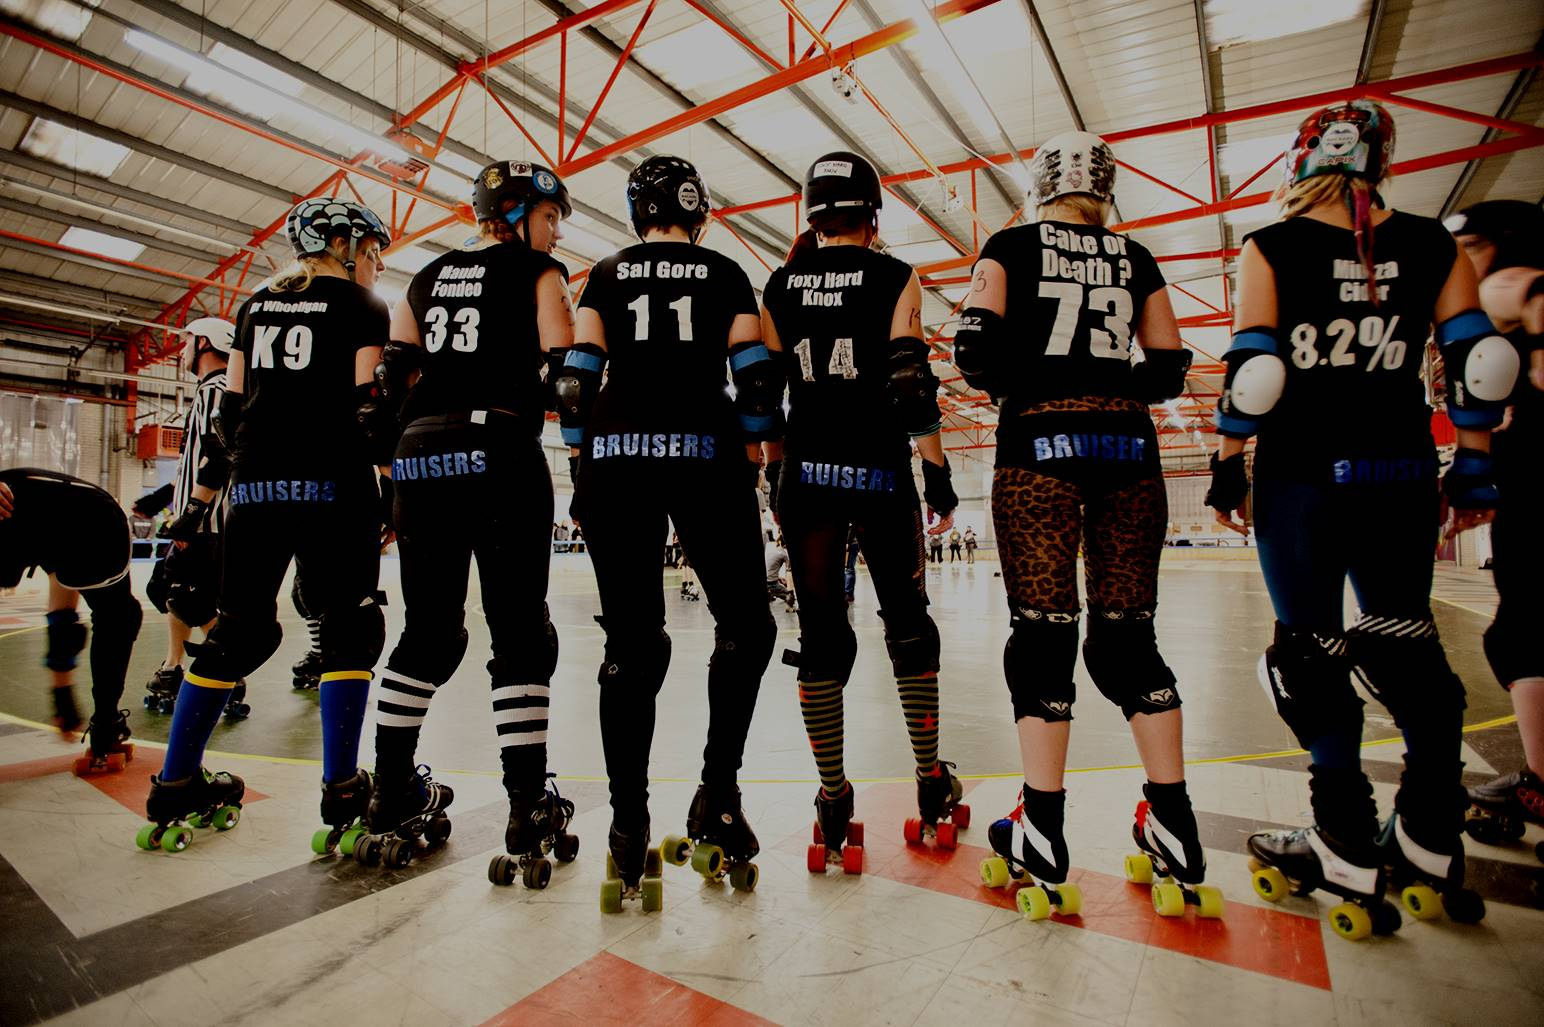 Groups, Teams and Committee Management - Roller Derby On Film